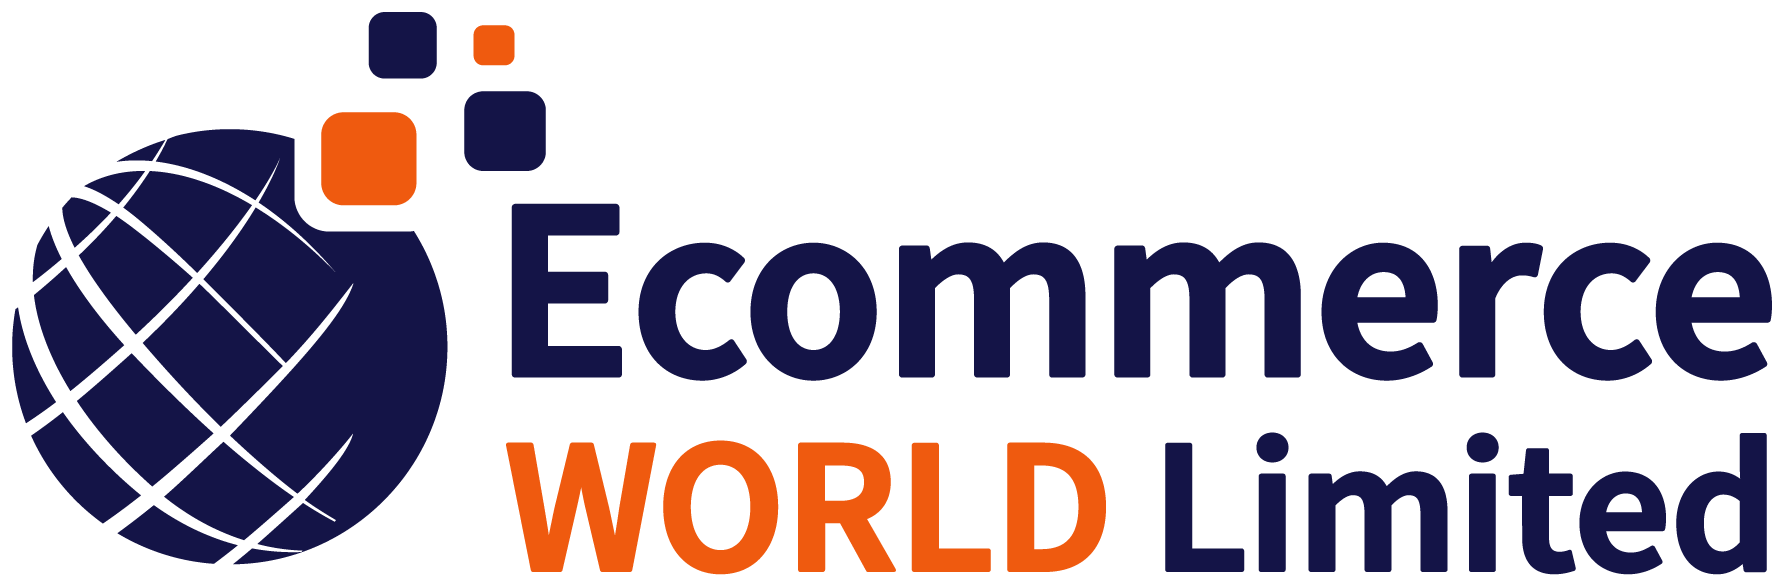 Ecommerce World